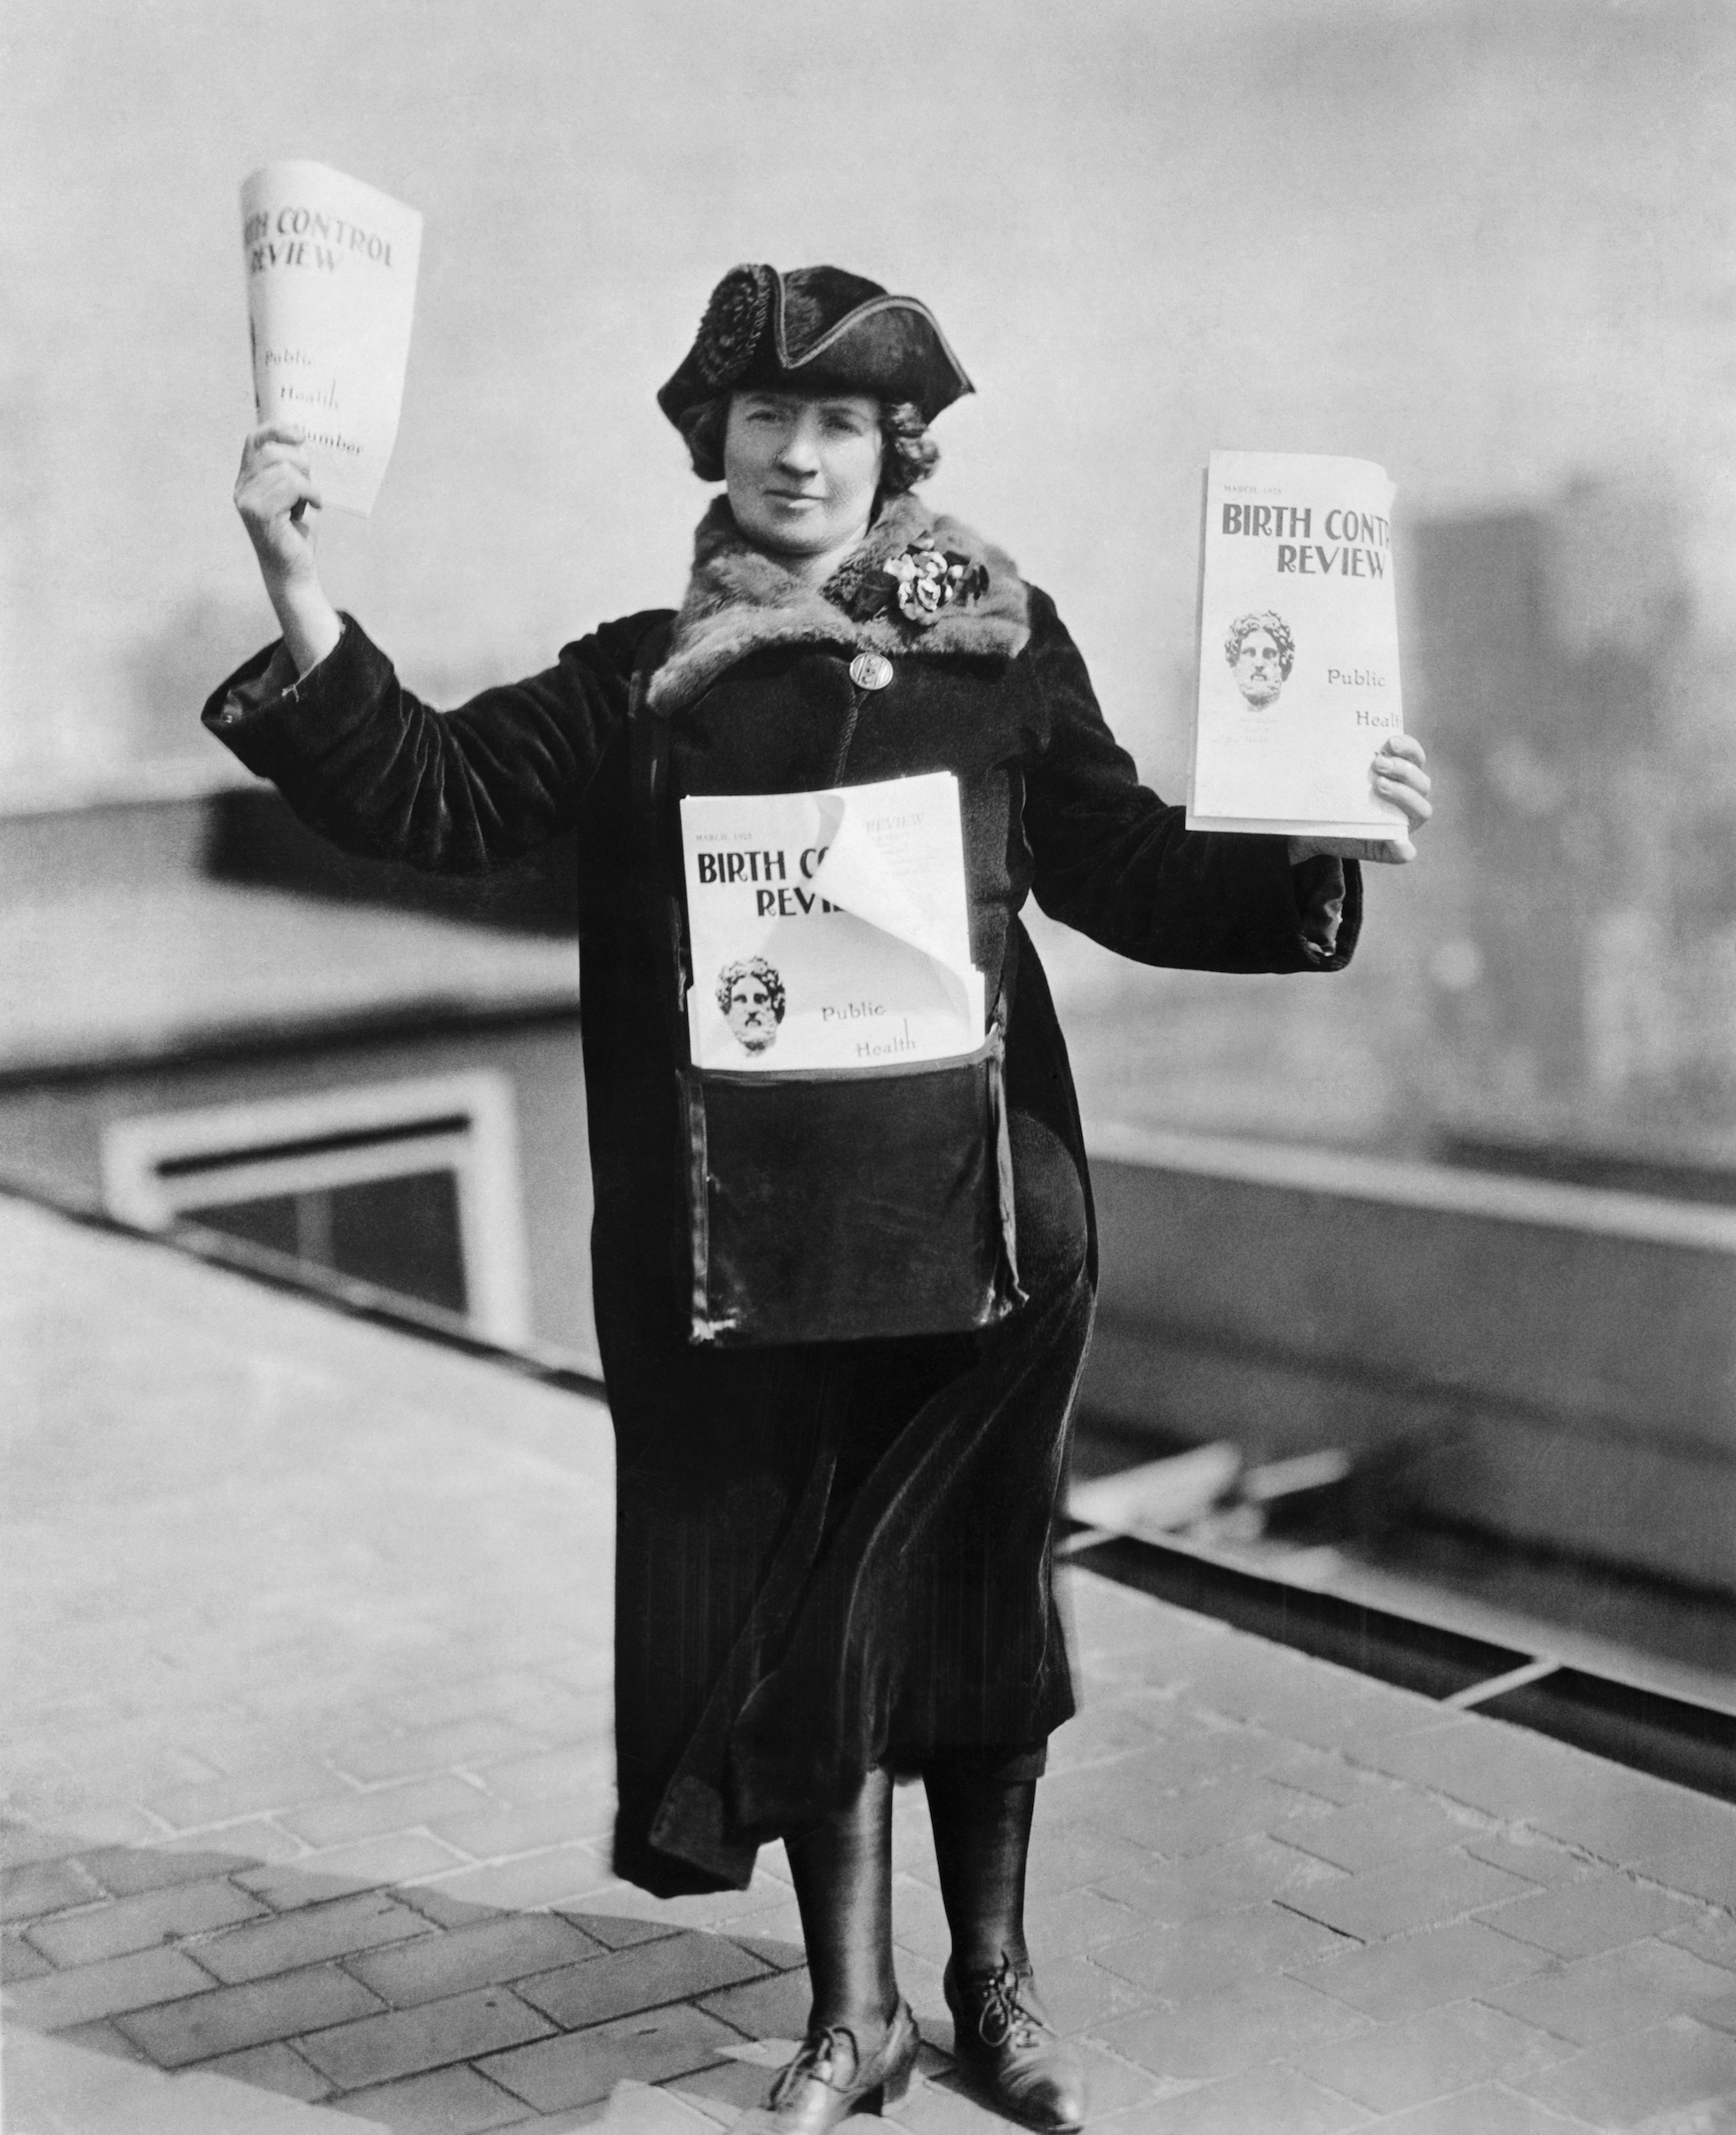 Kitty Marion ready to sell the Birth Control Review in the streets of New York, 1915.